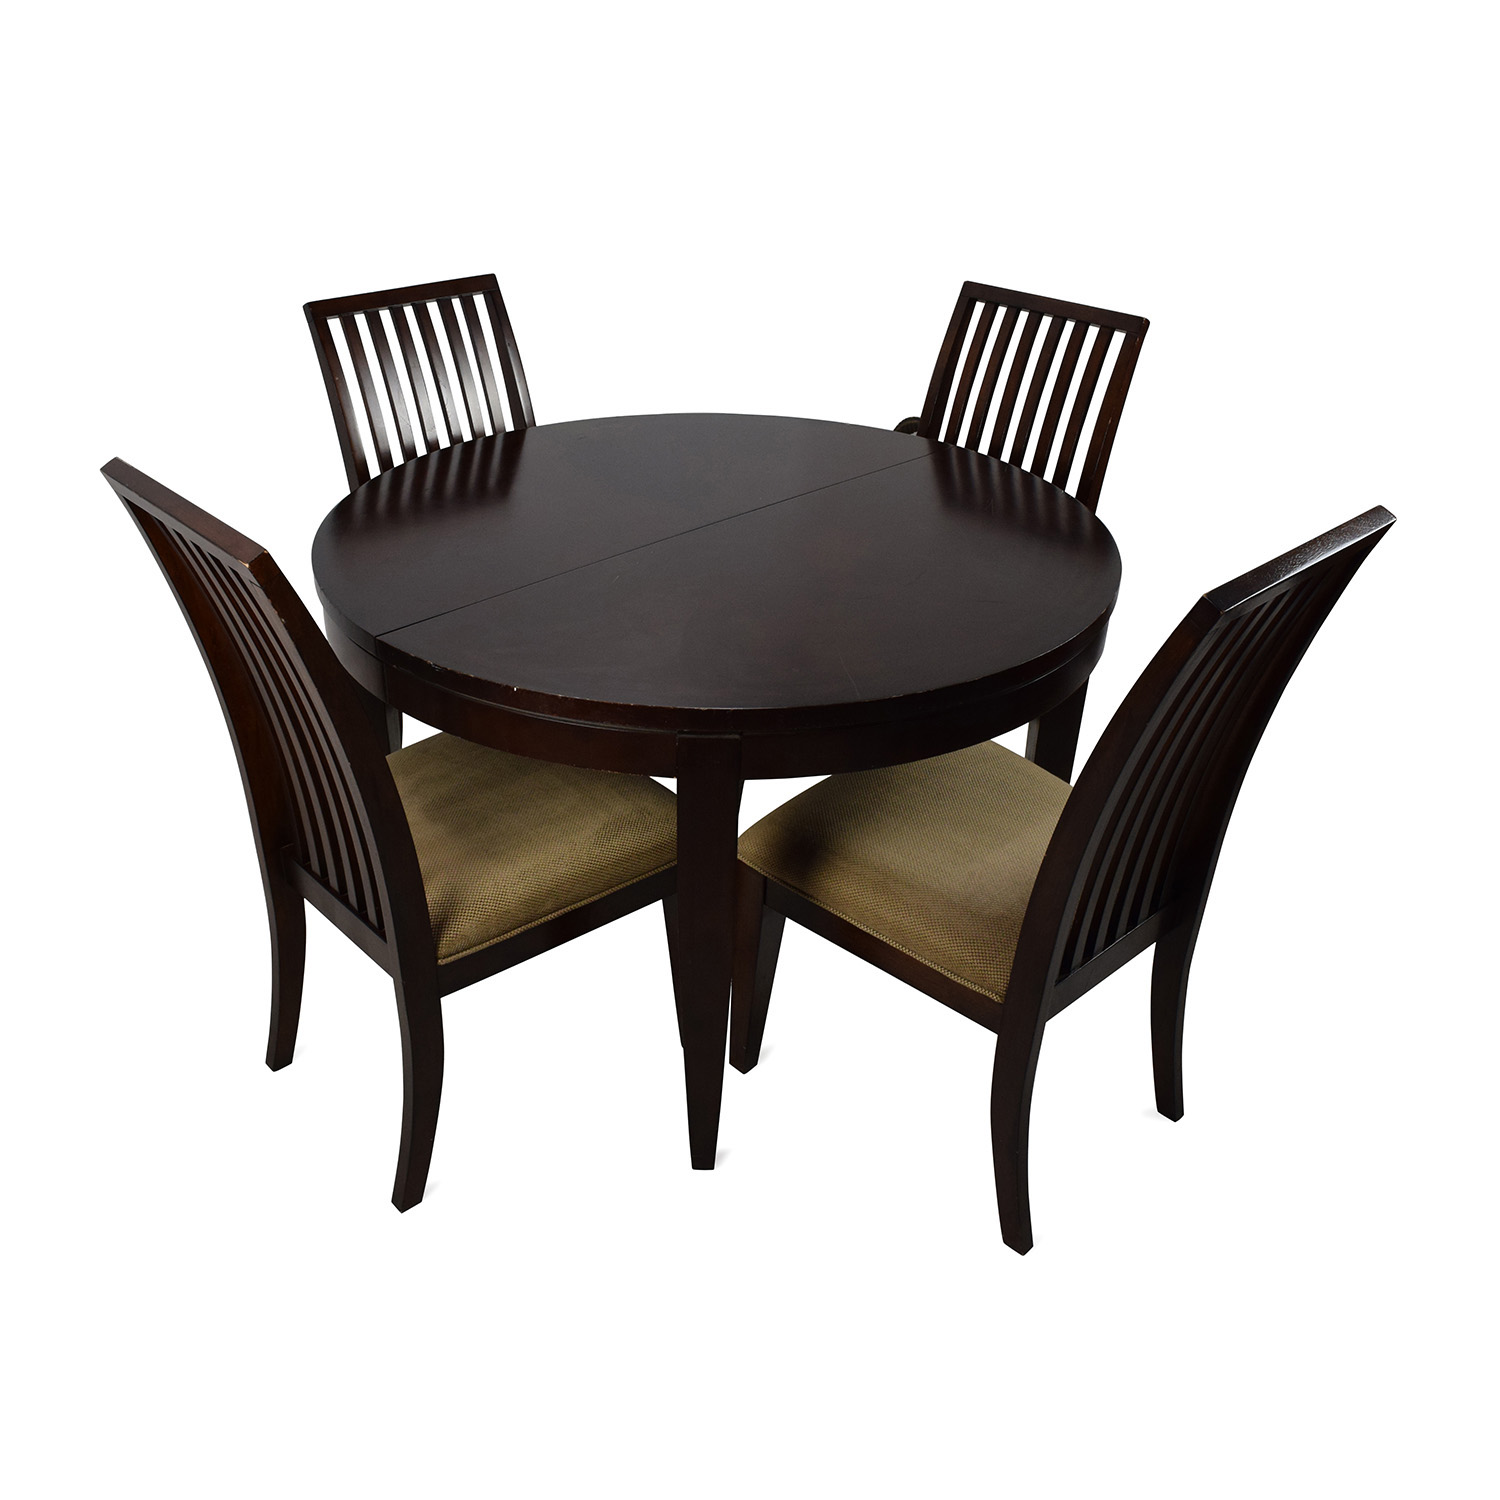 https://images.furnishare.com/11944/macy-s/tables/dining-sets/macy-s-bradford-extendable-dining-table-with-4-chairs-second-hand.jpeg